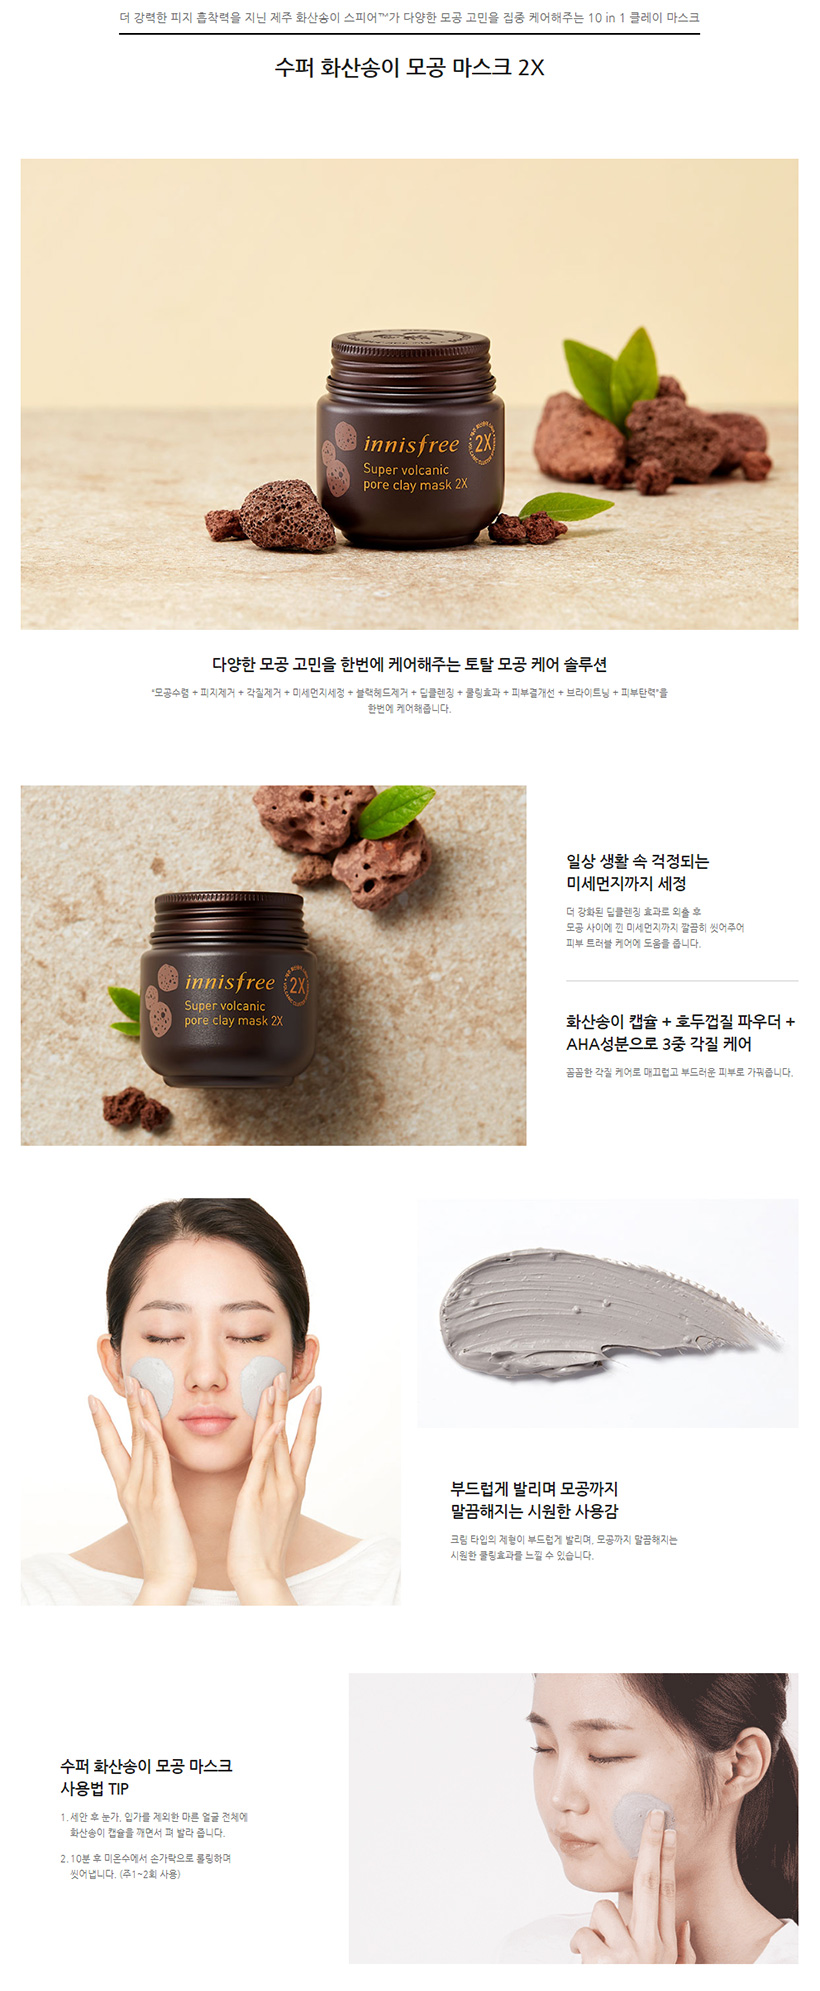 [Youtube Creater Only]INNISFREE Super Volcanic Pore Clay Mask 2X 100ml 상세이미지 1